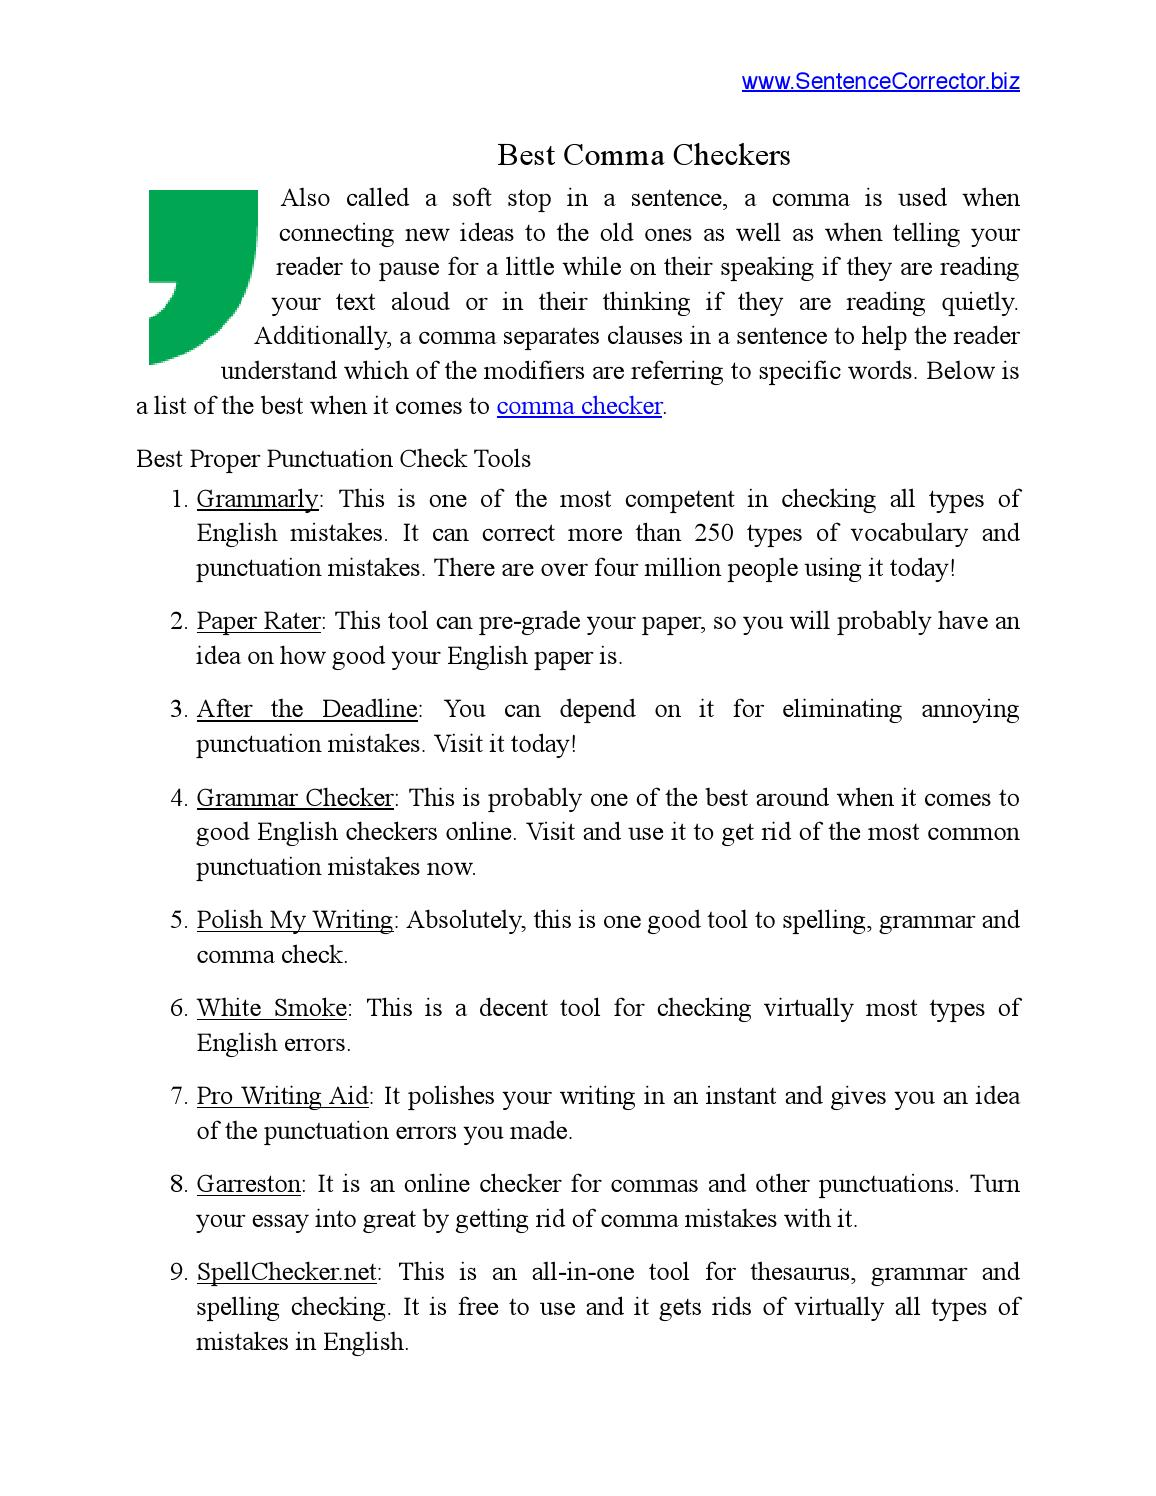 009 Check Essay Example Page 1 Archaicawful My For Punctuation Errors Free On Turnitin Grammar Full